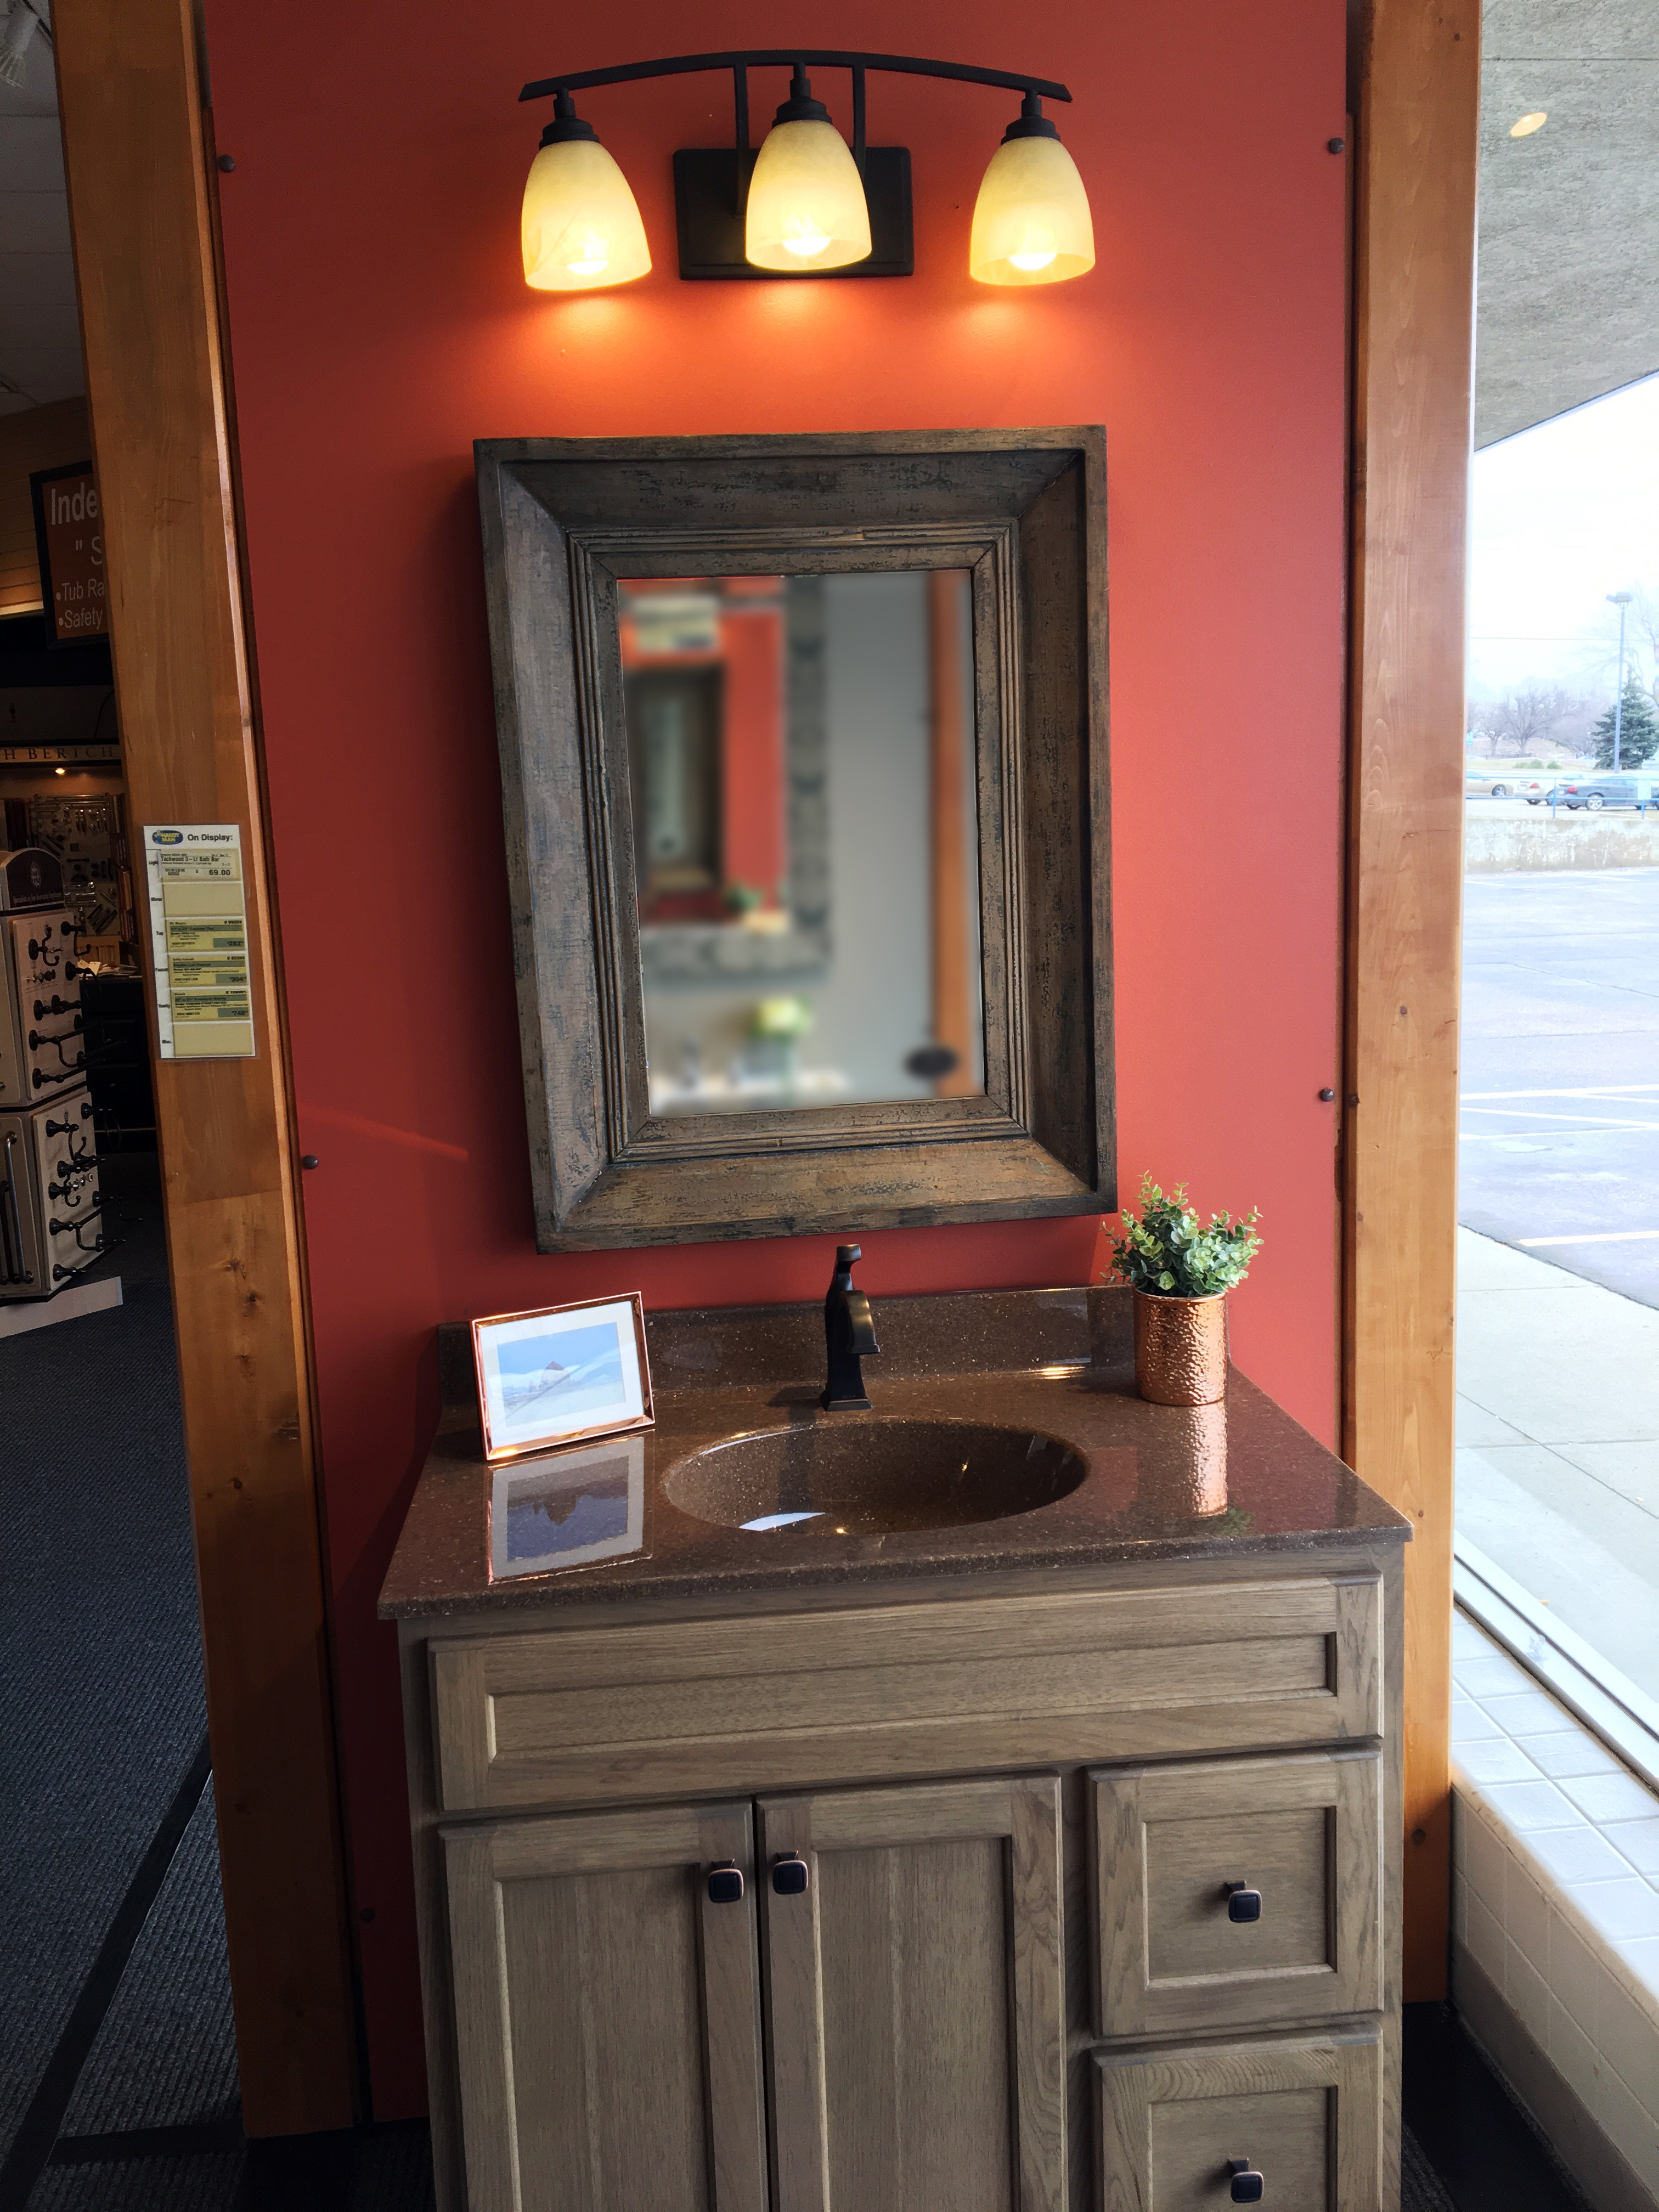 We Show Dozens Of Display Setups For You To Visualize Different Pieces  Together. We Have Dozens Of Lights, Mirrors, And Medicine Cabinets On  Display And ...